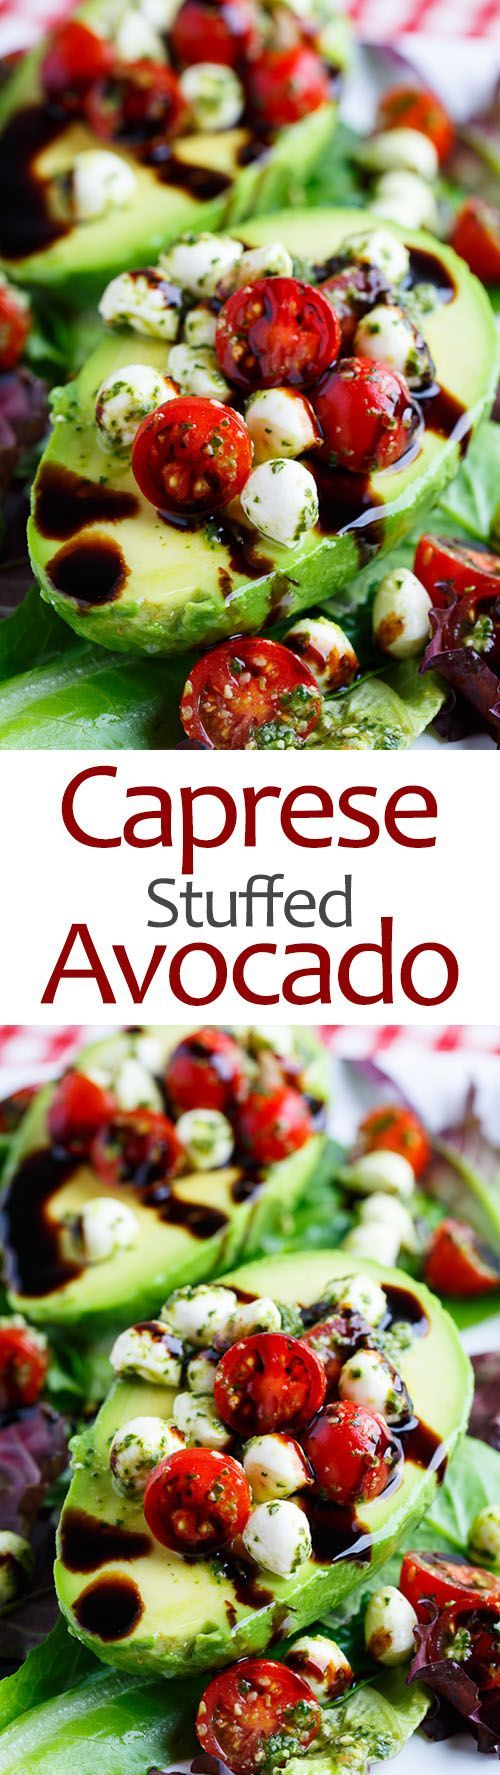 Caprese Stuffed Avocados stuffed with fresh tomatoes and mozzarella tossed in basil pesto and finished with a drizzle of balsamic vinegar.